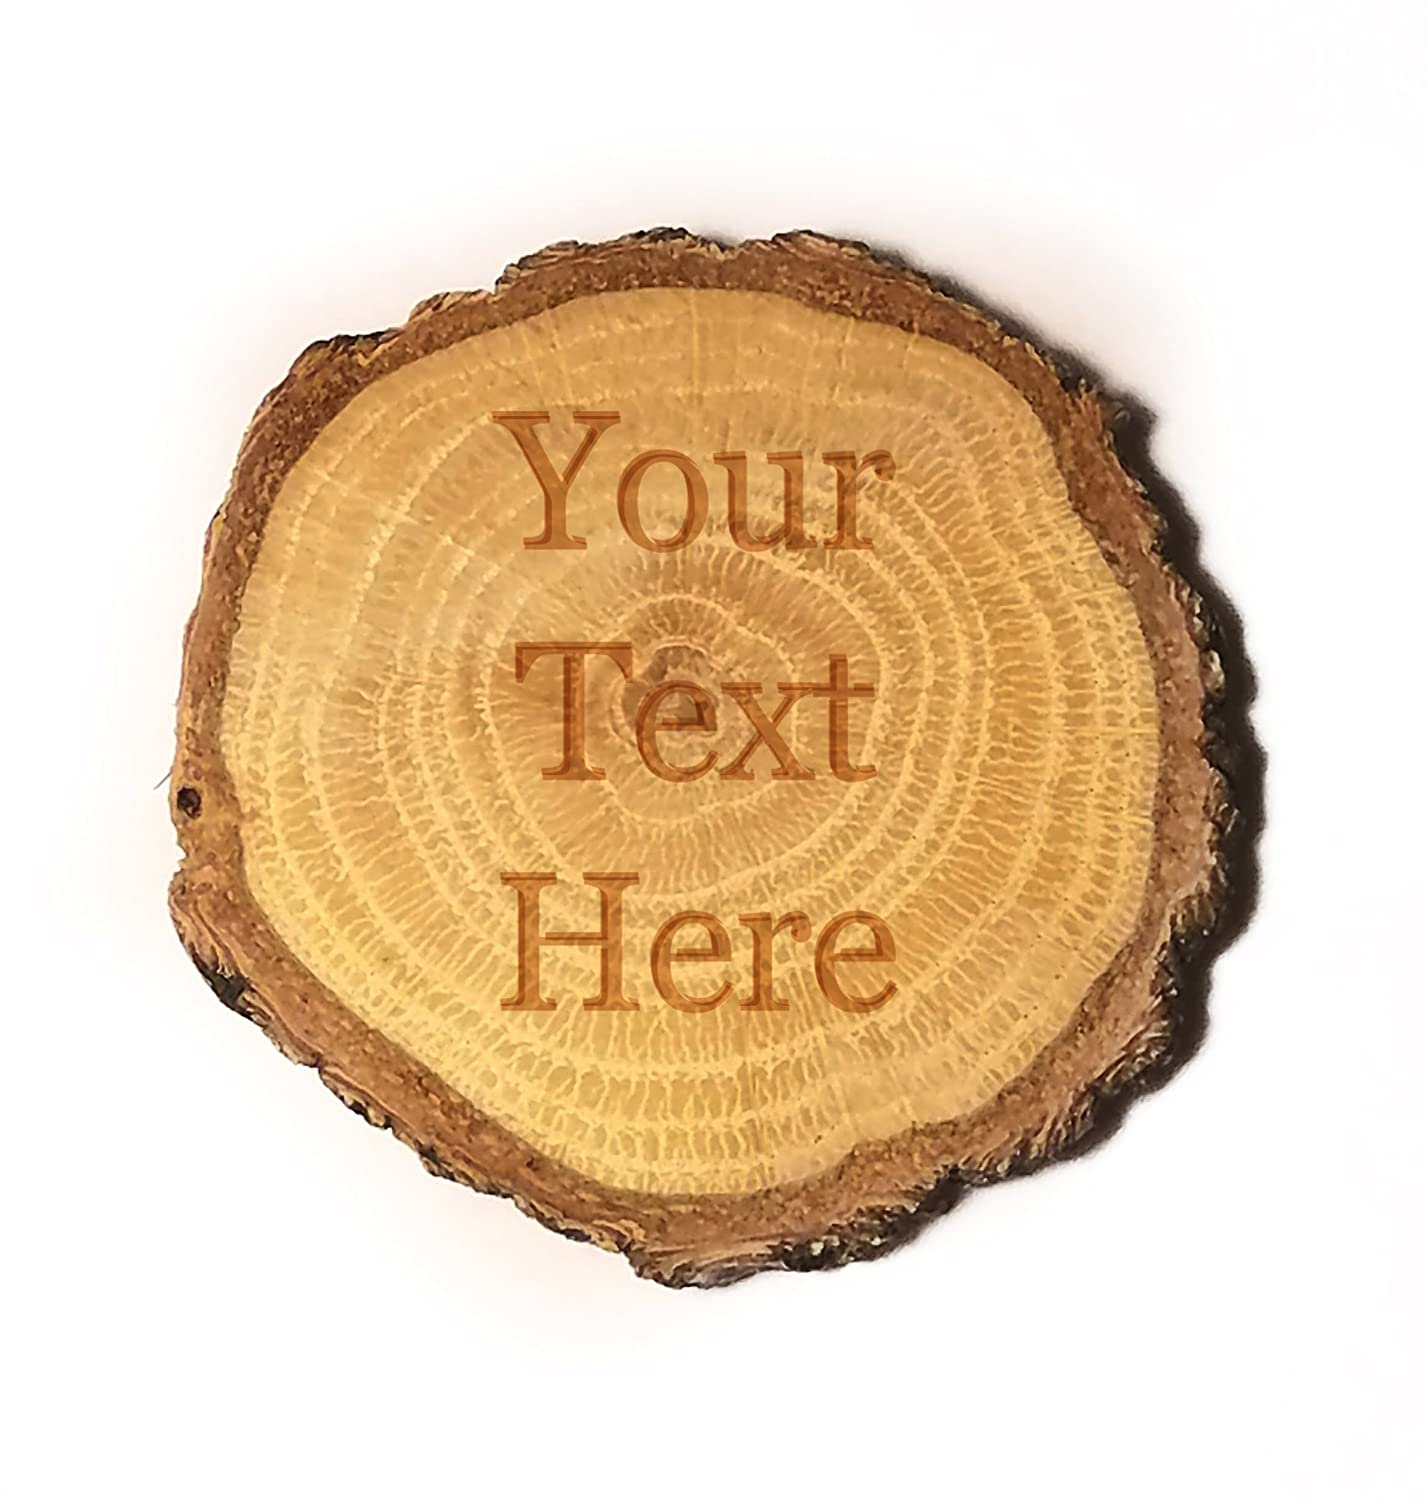 Customized 3D Laser Engraved Personalized Wooden Rustic Log Custom Magnet with Your Text